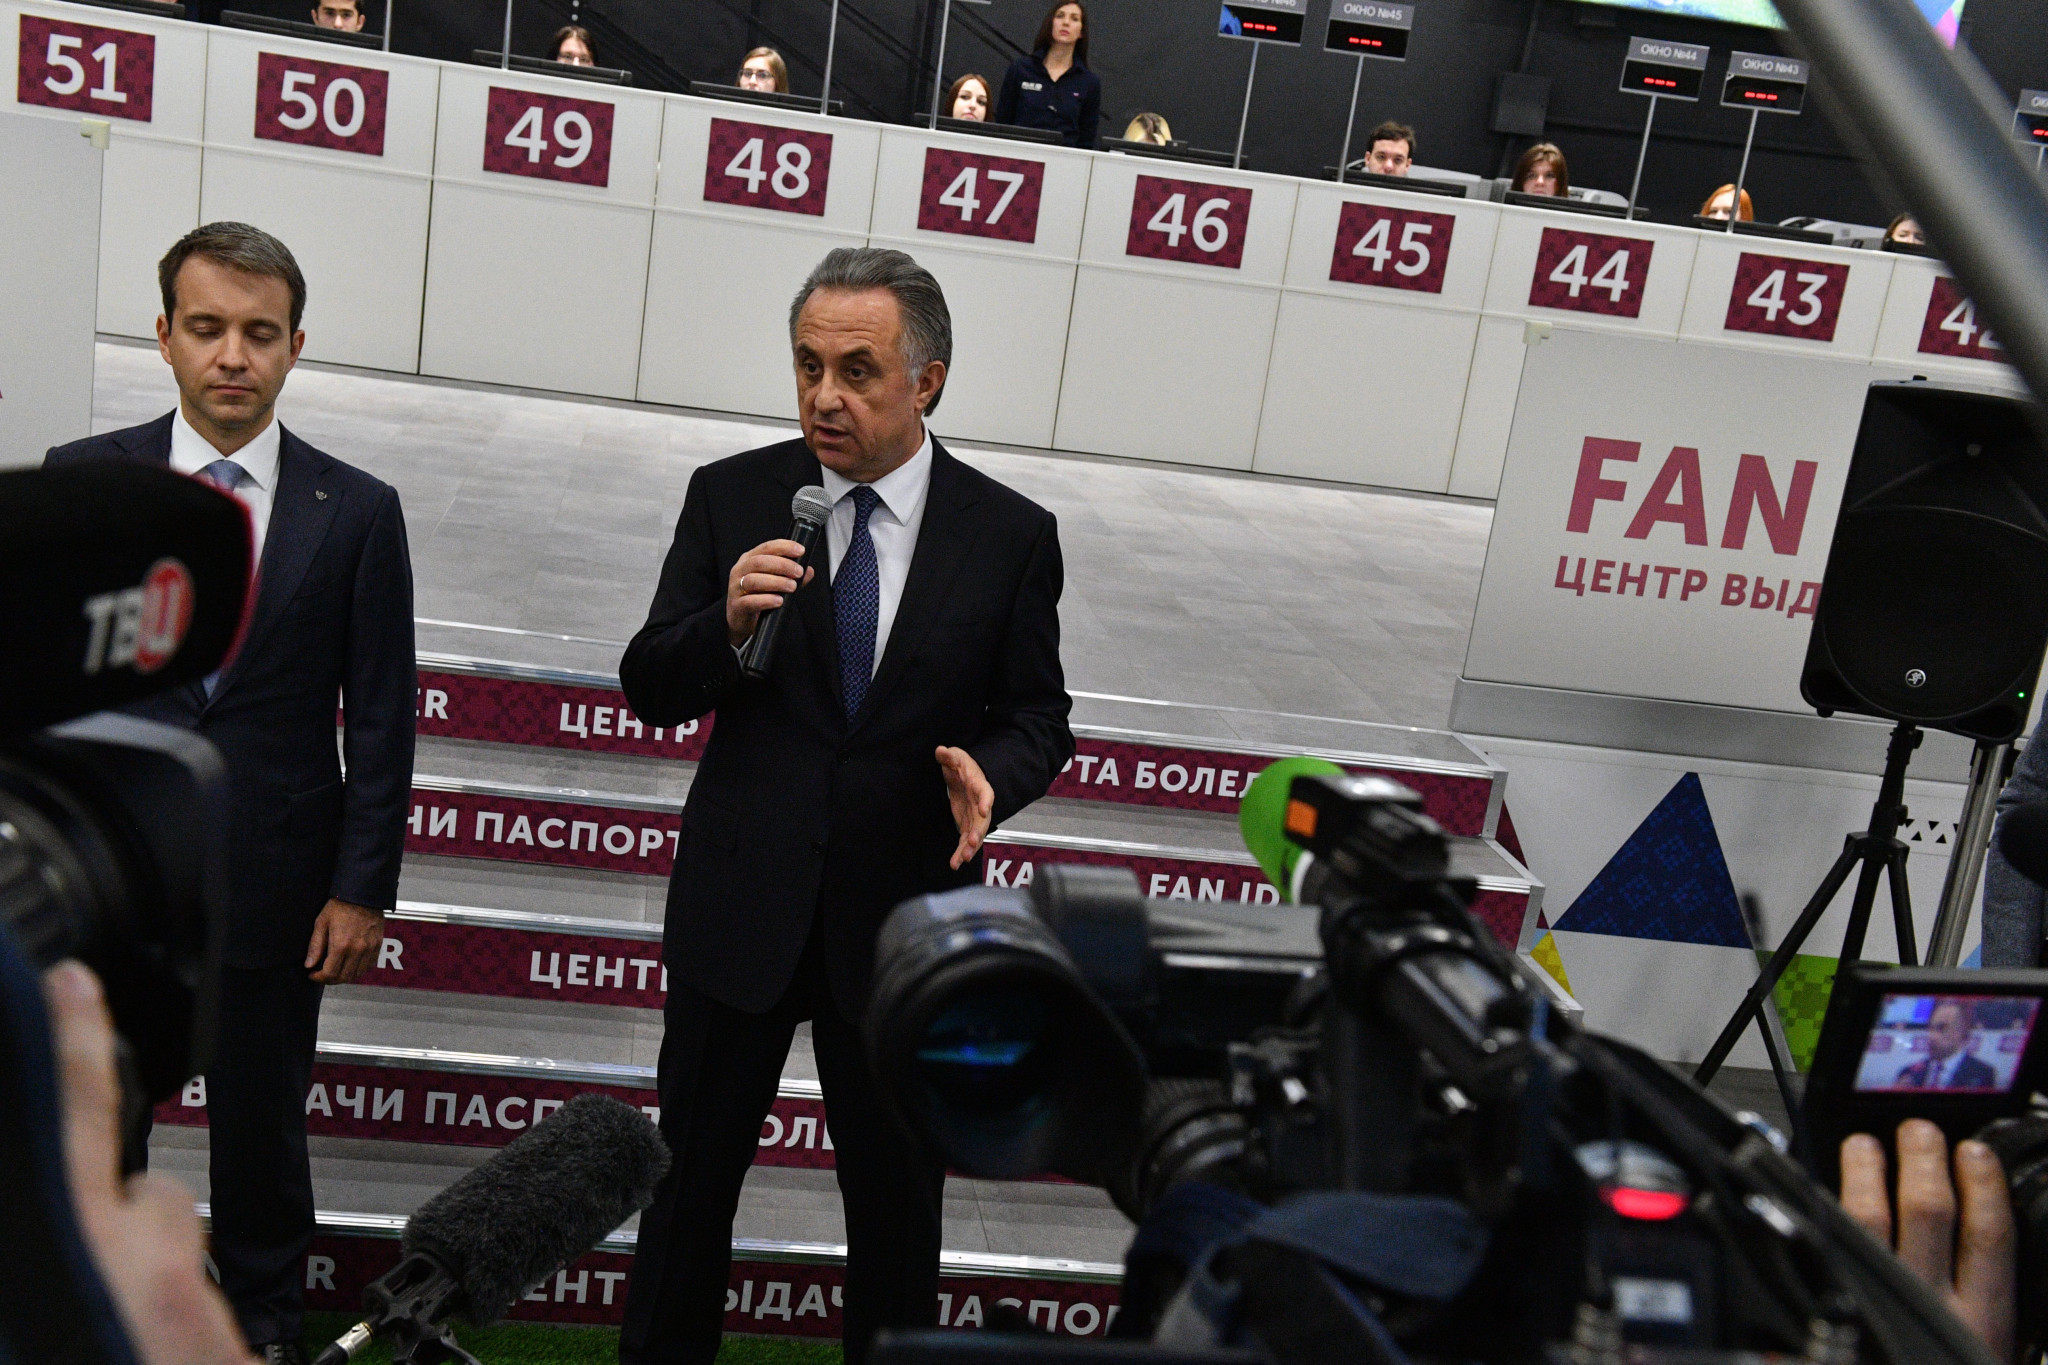 Vitaly Mutko also warned he may step down as head of the Russia 2018 Organising Committee to focus on fighting the ban ©Getty Images